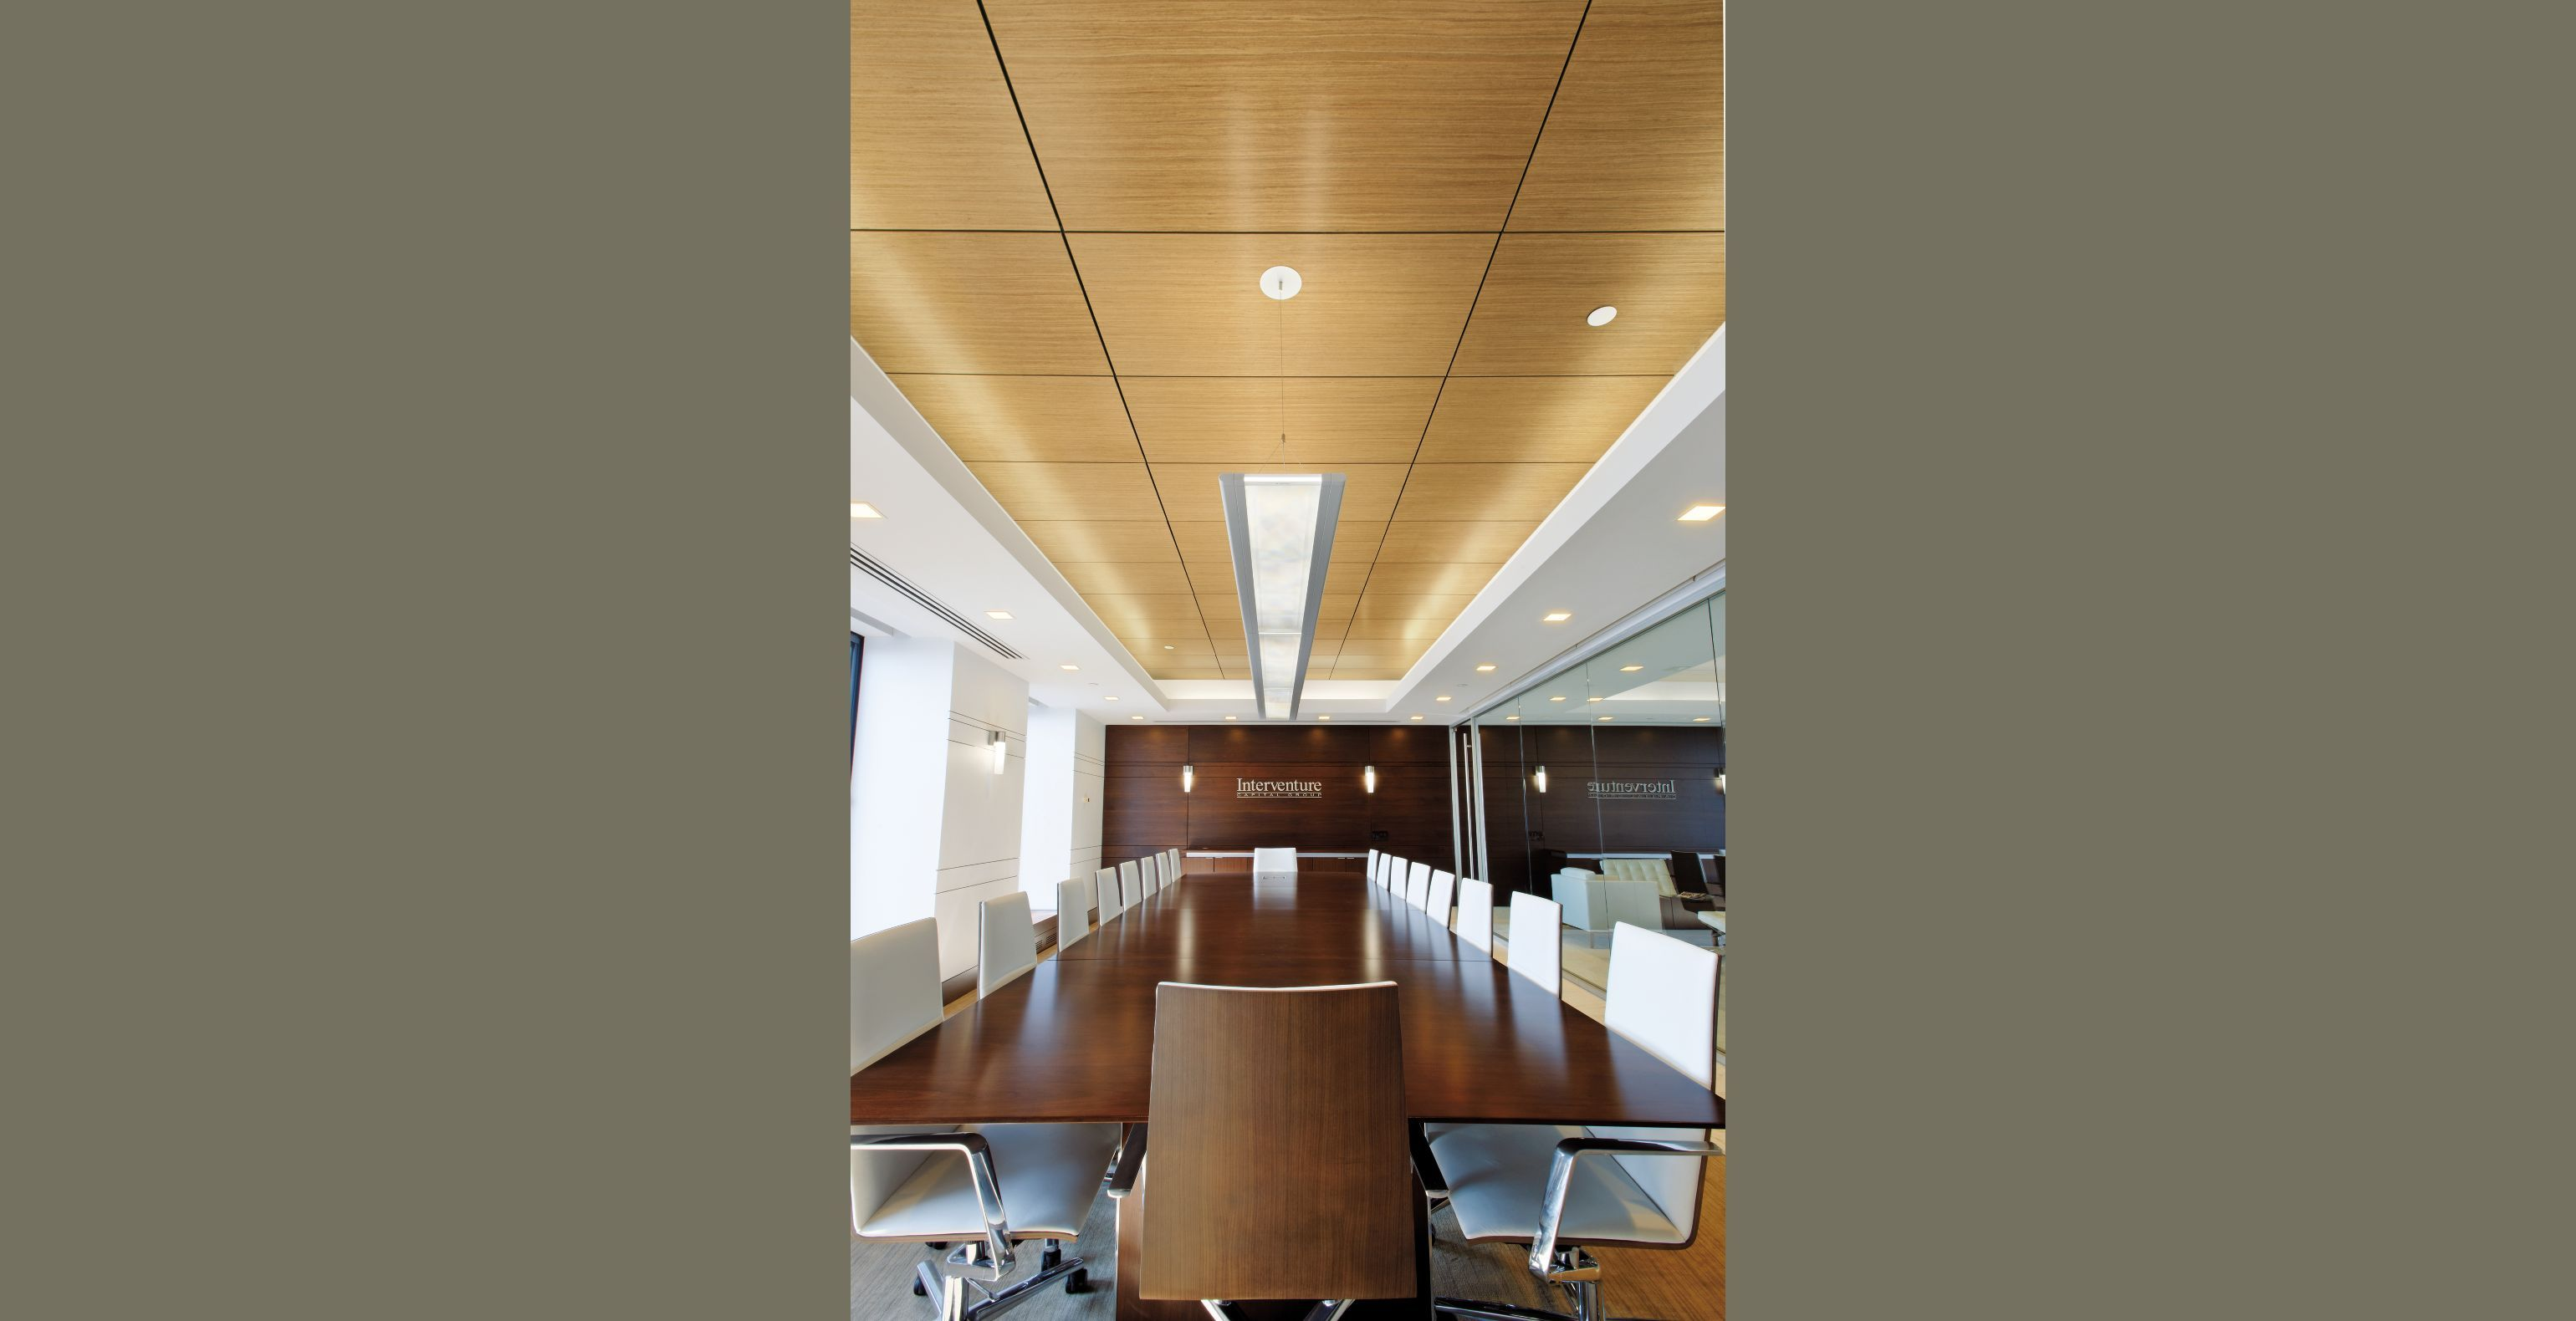 ceilings gallery wall systems plts pin idea and photo armstrong panels commercial ceiling